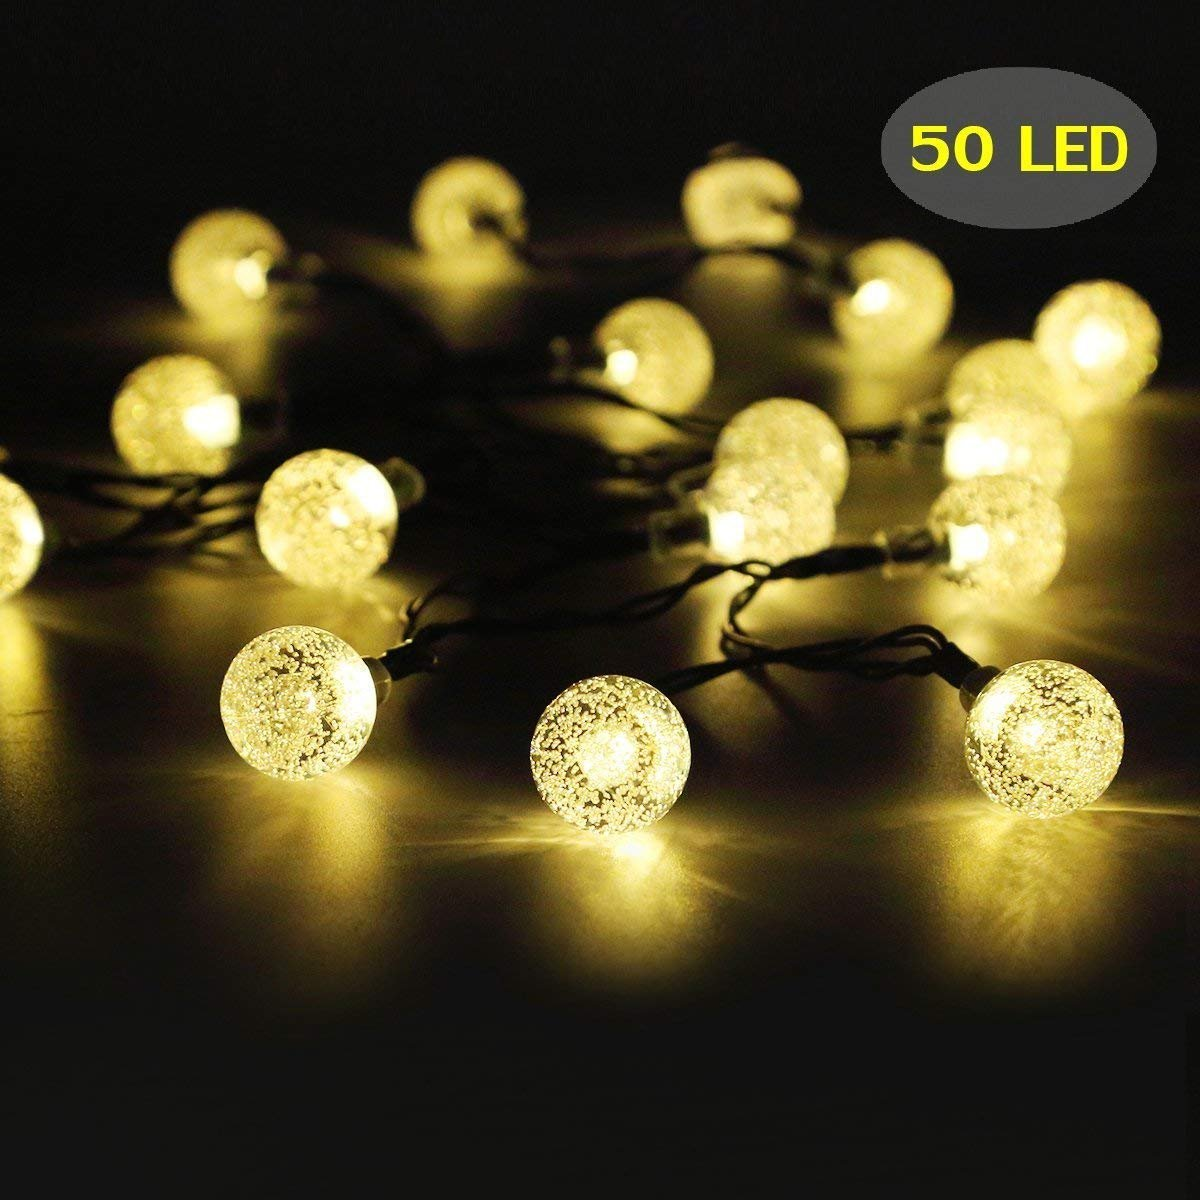 Crystal String Lights, DINOWIN Outdoor Solar String Lights 7M 50LED Solar Crystal String Lights Waterproof with 2 Lighting Mode for Christmas, Home, Garden, Indoor Outdoor Decoration (Warm White)